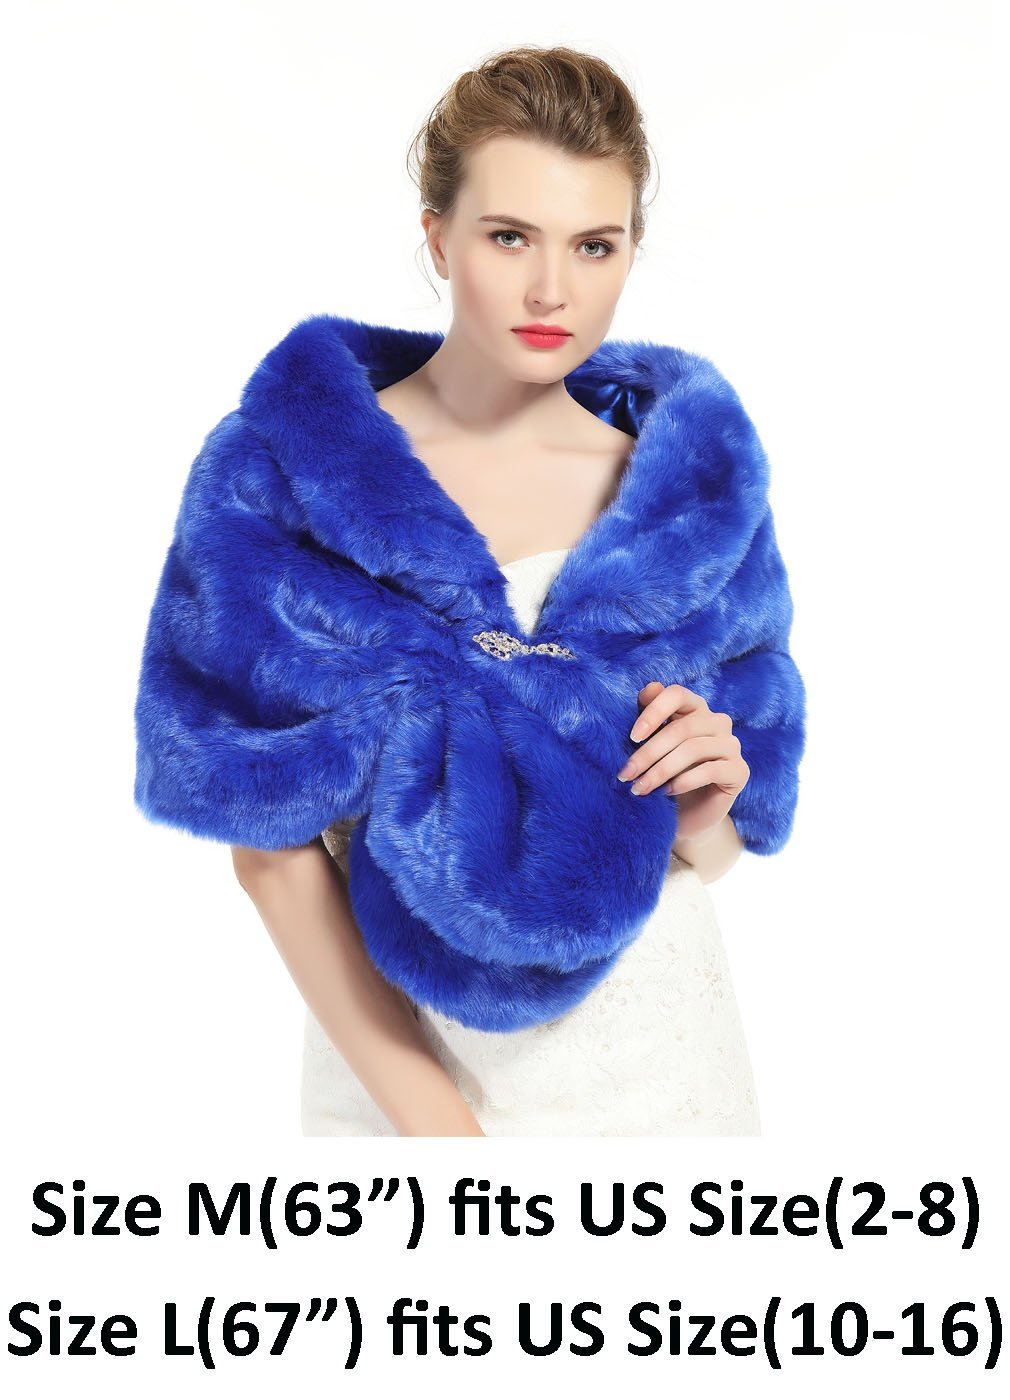 Faux Fur Shawl Wrap Stole Shrug Winter Bridal Wedding Cover Up Royal Blue Size M by MISSYDRESS (Image #2)